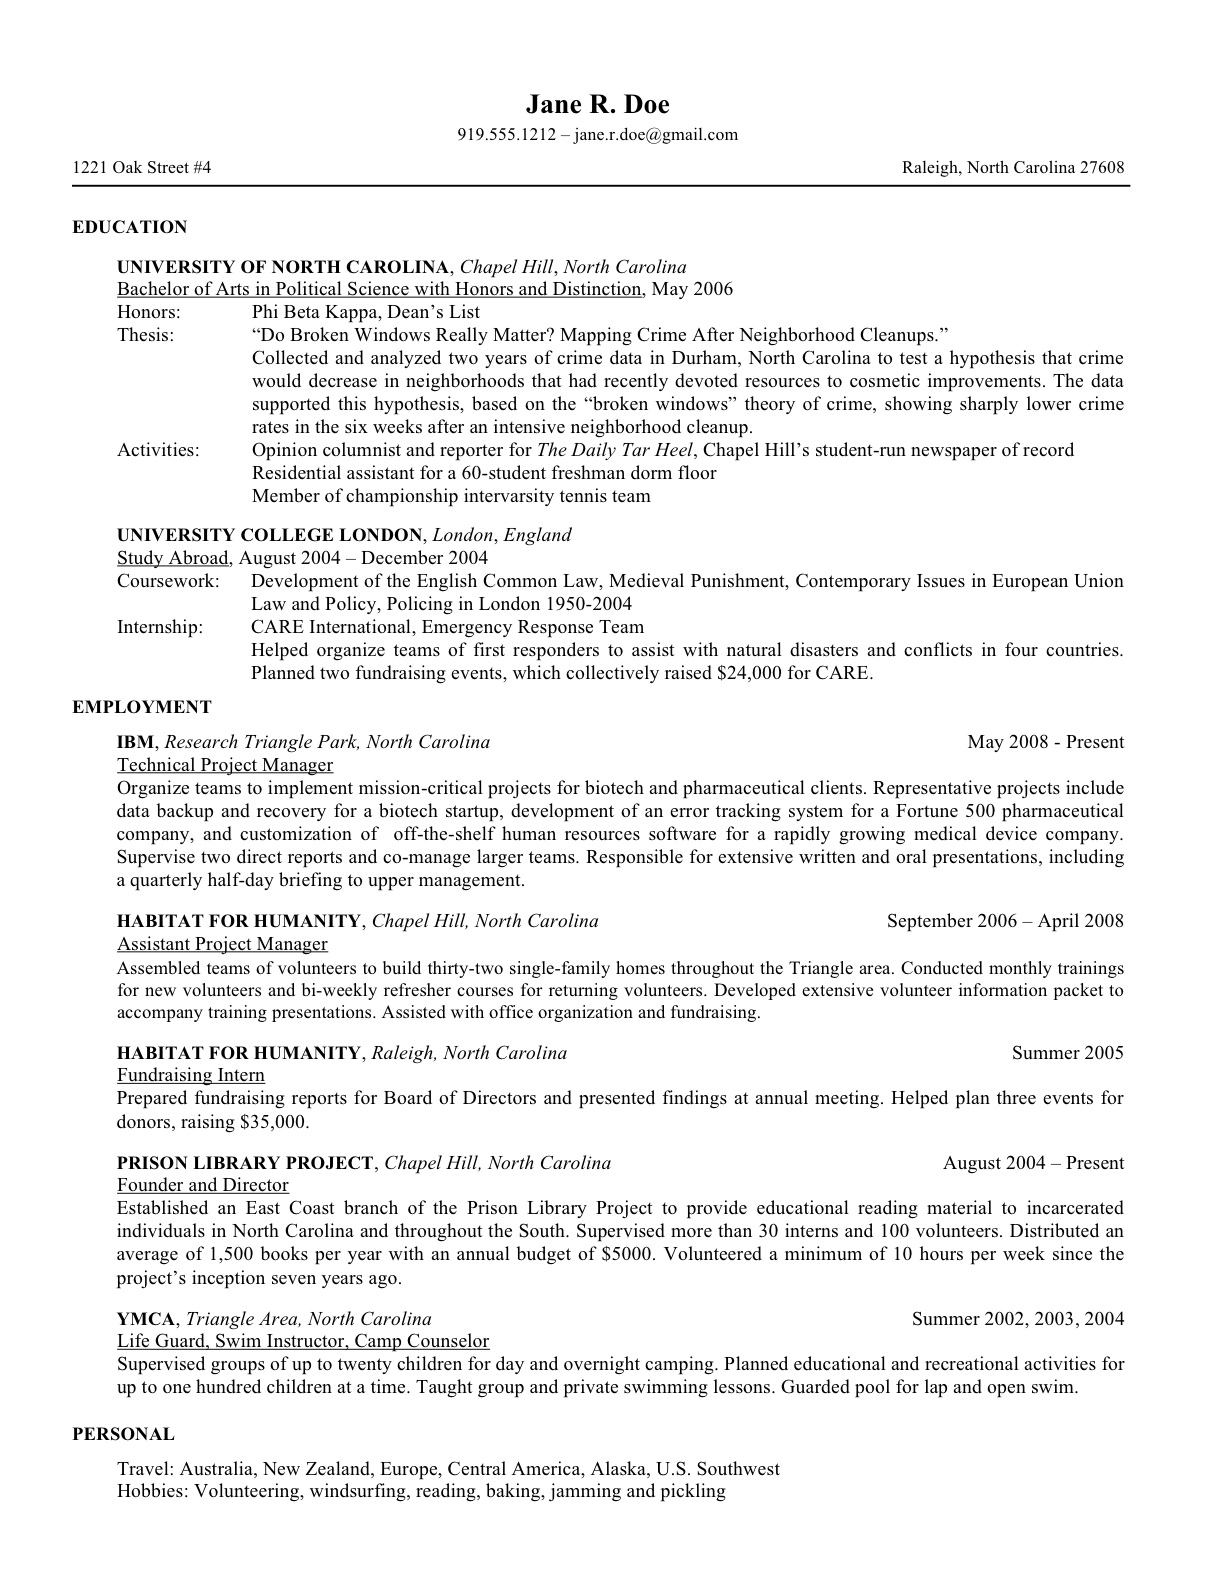 Resume For Internship At Law Firm How To Become An Associate At A Law Firm With Pictures How To Craft A Law School Application That Gets You In